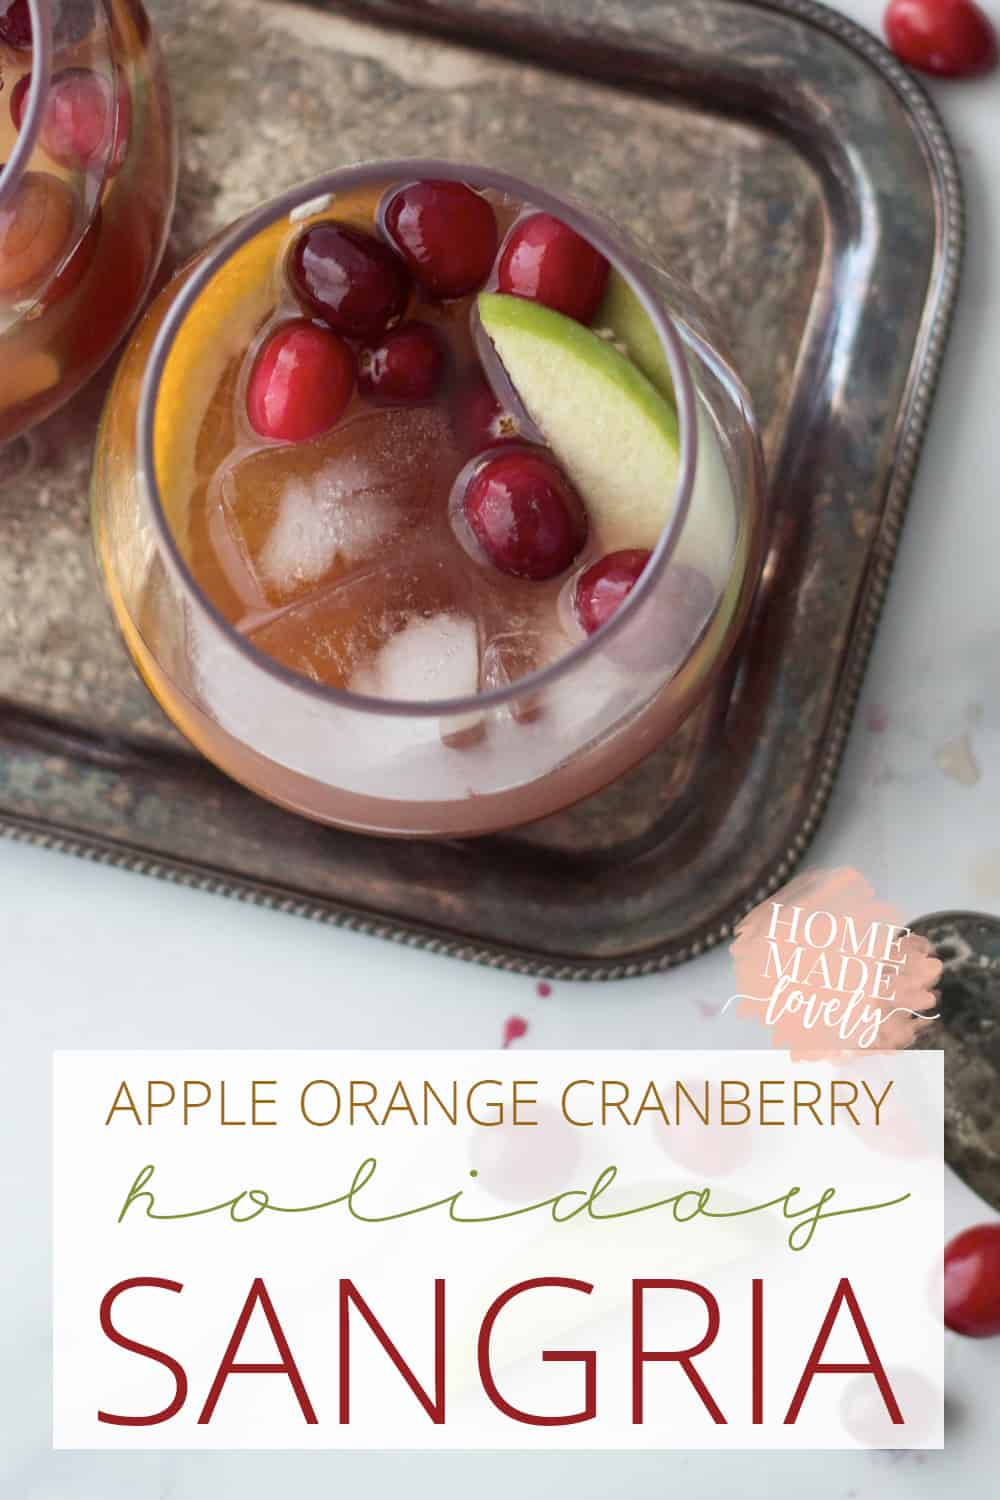 This apple orange cranberry holiday sangria is the perfect mix of fruit and spices for the winter months! Make up a pitcher & have it ready to serve guests!